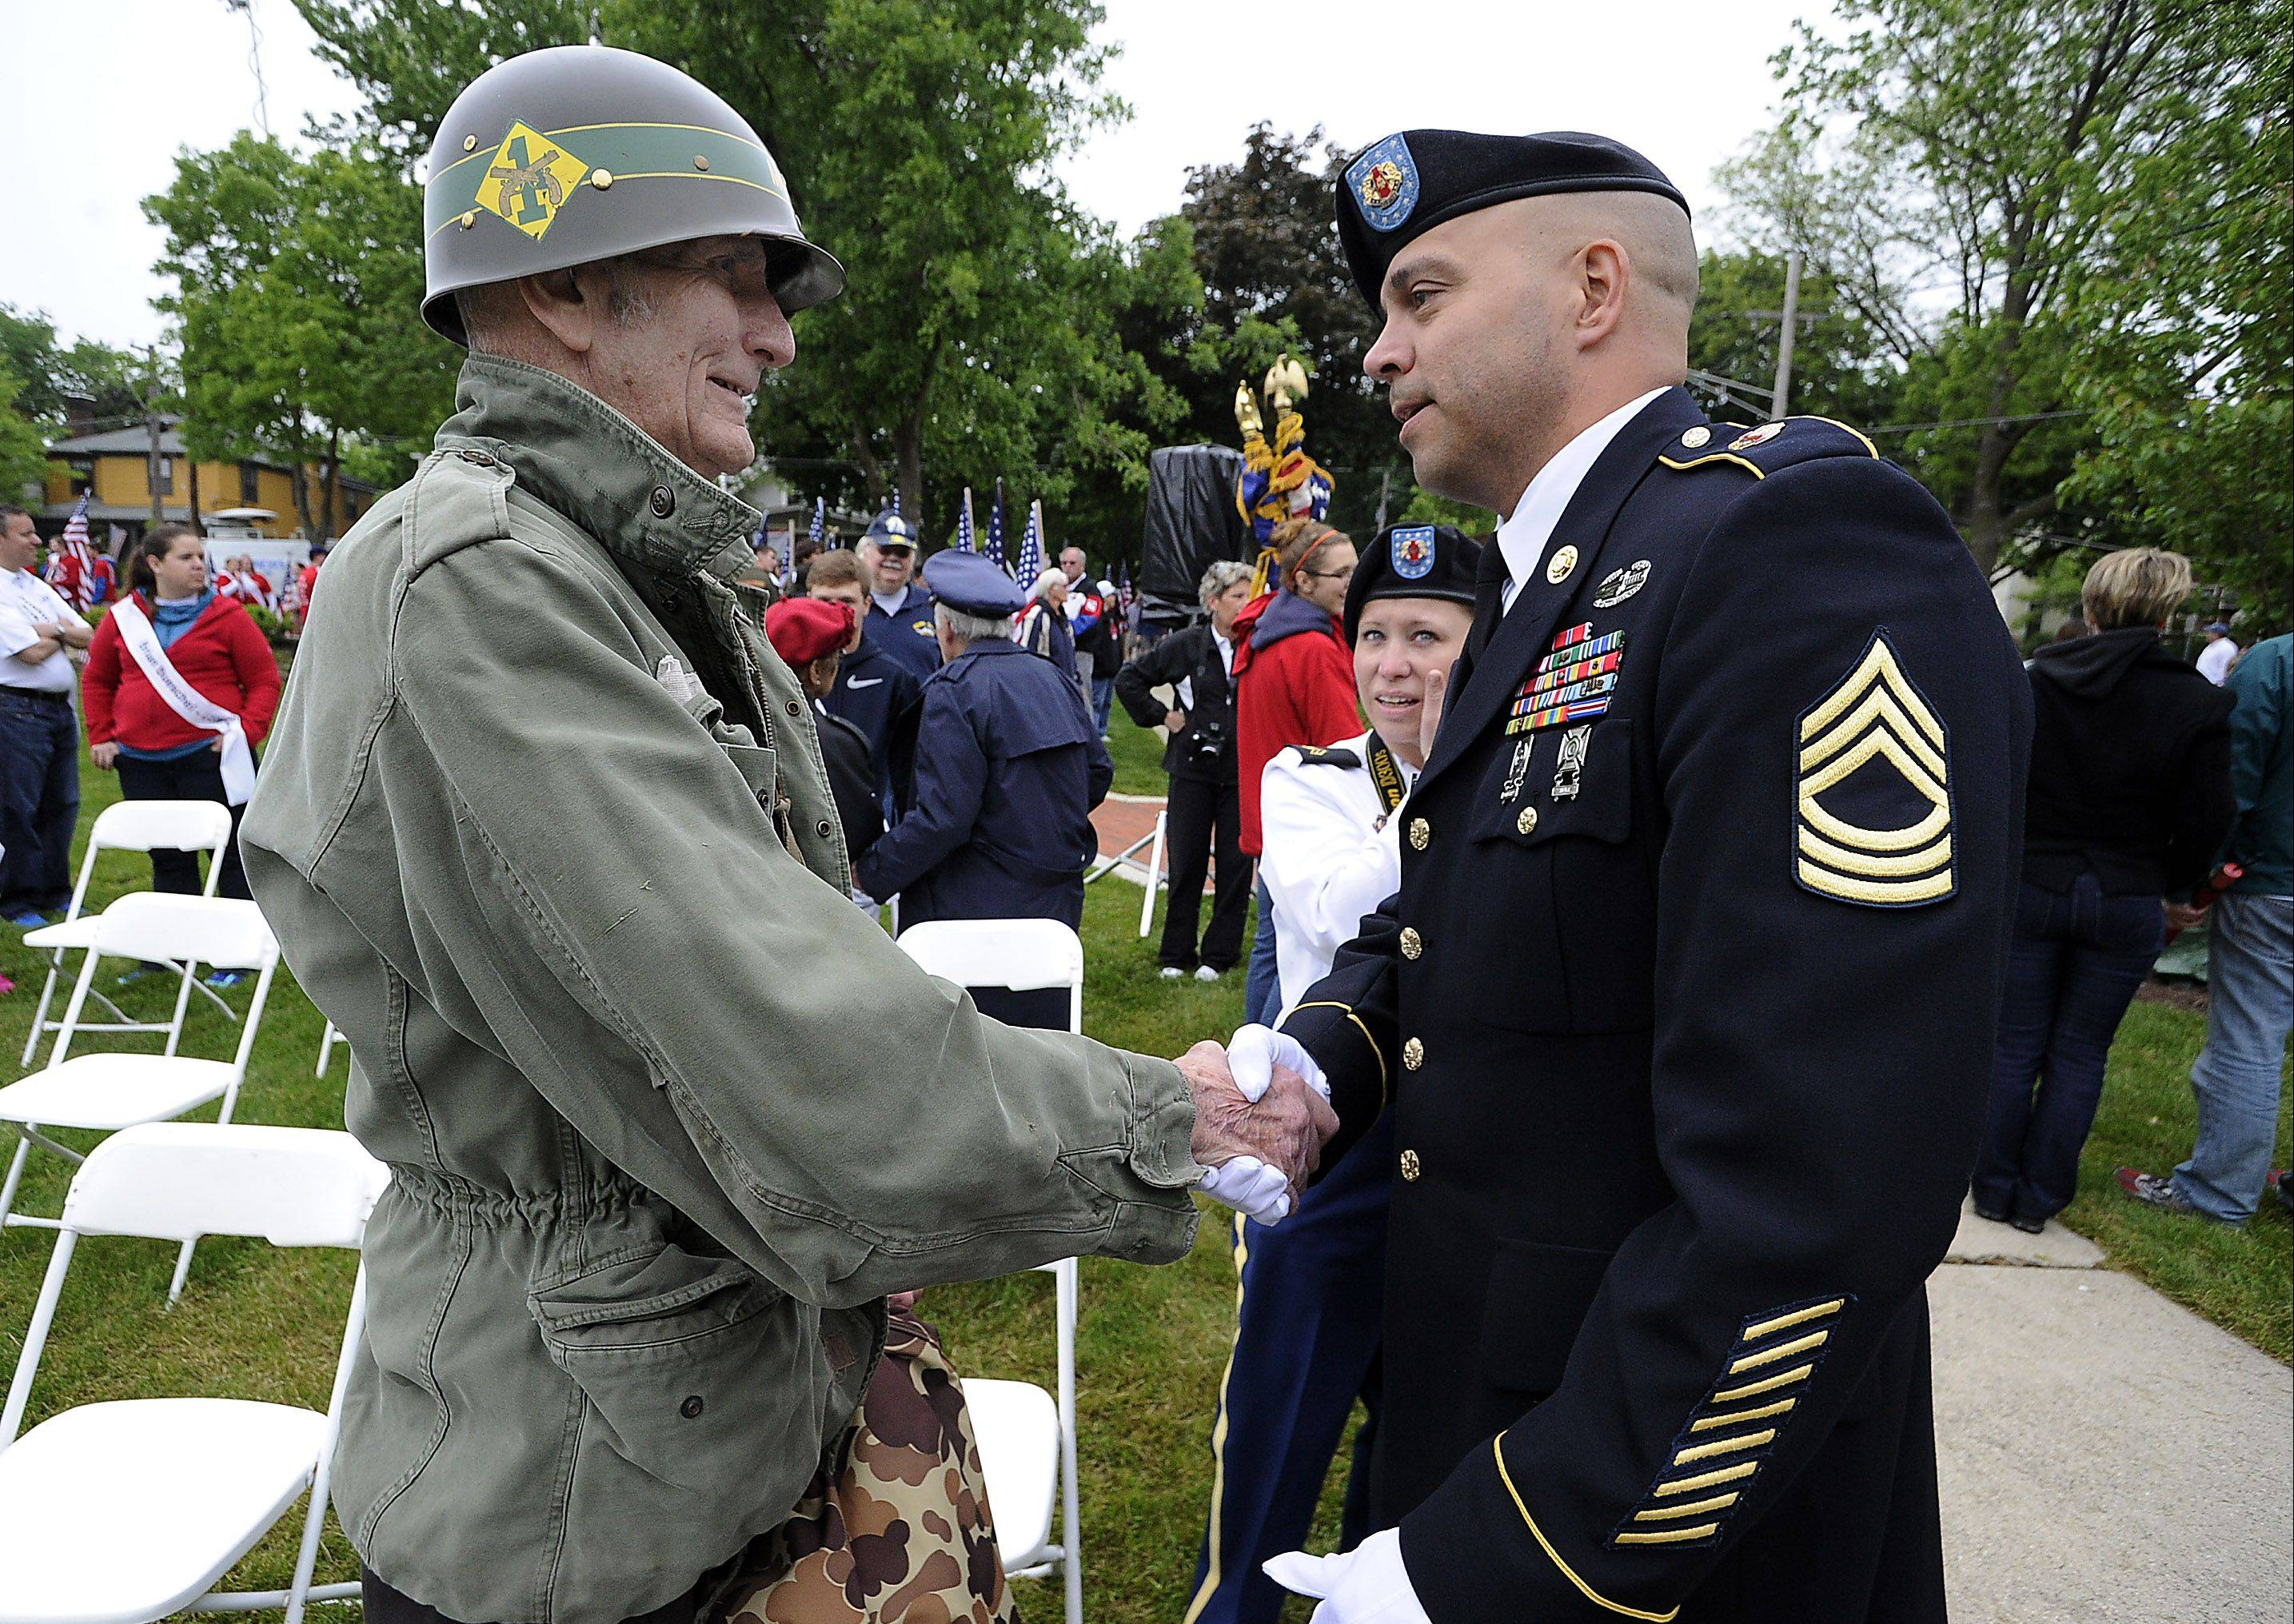 Korean War veteran Stan Mosher, 79, of Lombard, shakes the hand of Master Sgt. Gilbert Garrett of Arlington Heights, who served in Iraq and is secretary of the general staff for the 85th U.S. Army Reserve Support Command. The men were among a few hundred who attended the Arlington Heights Memorial Day ceremony on Monday in Memorial Park.